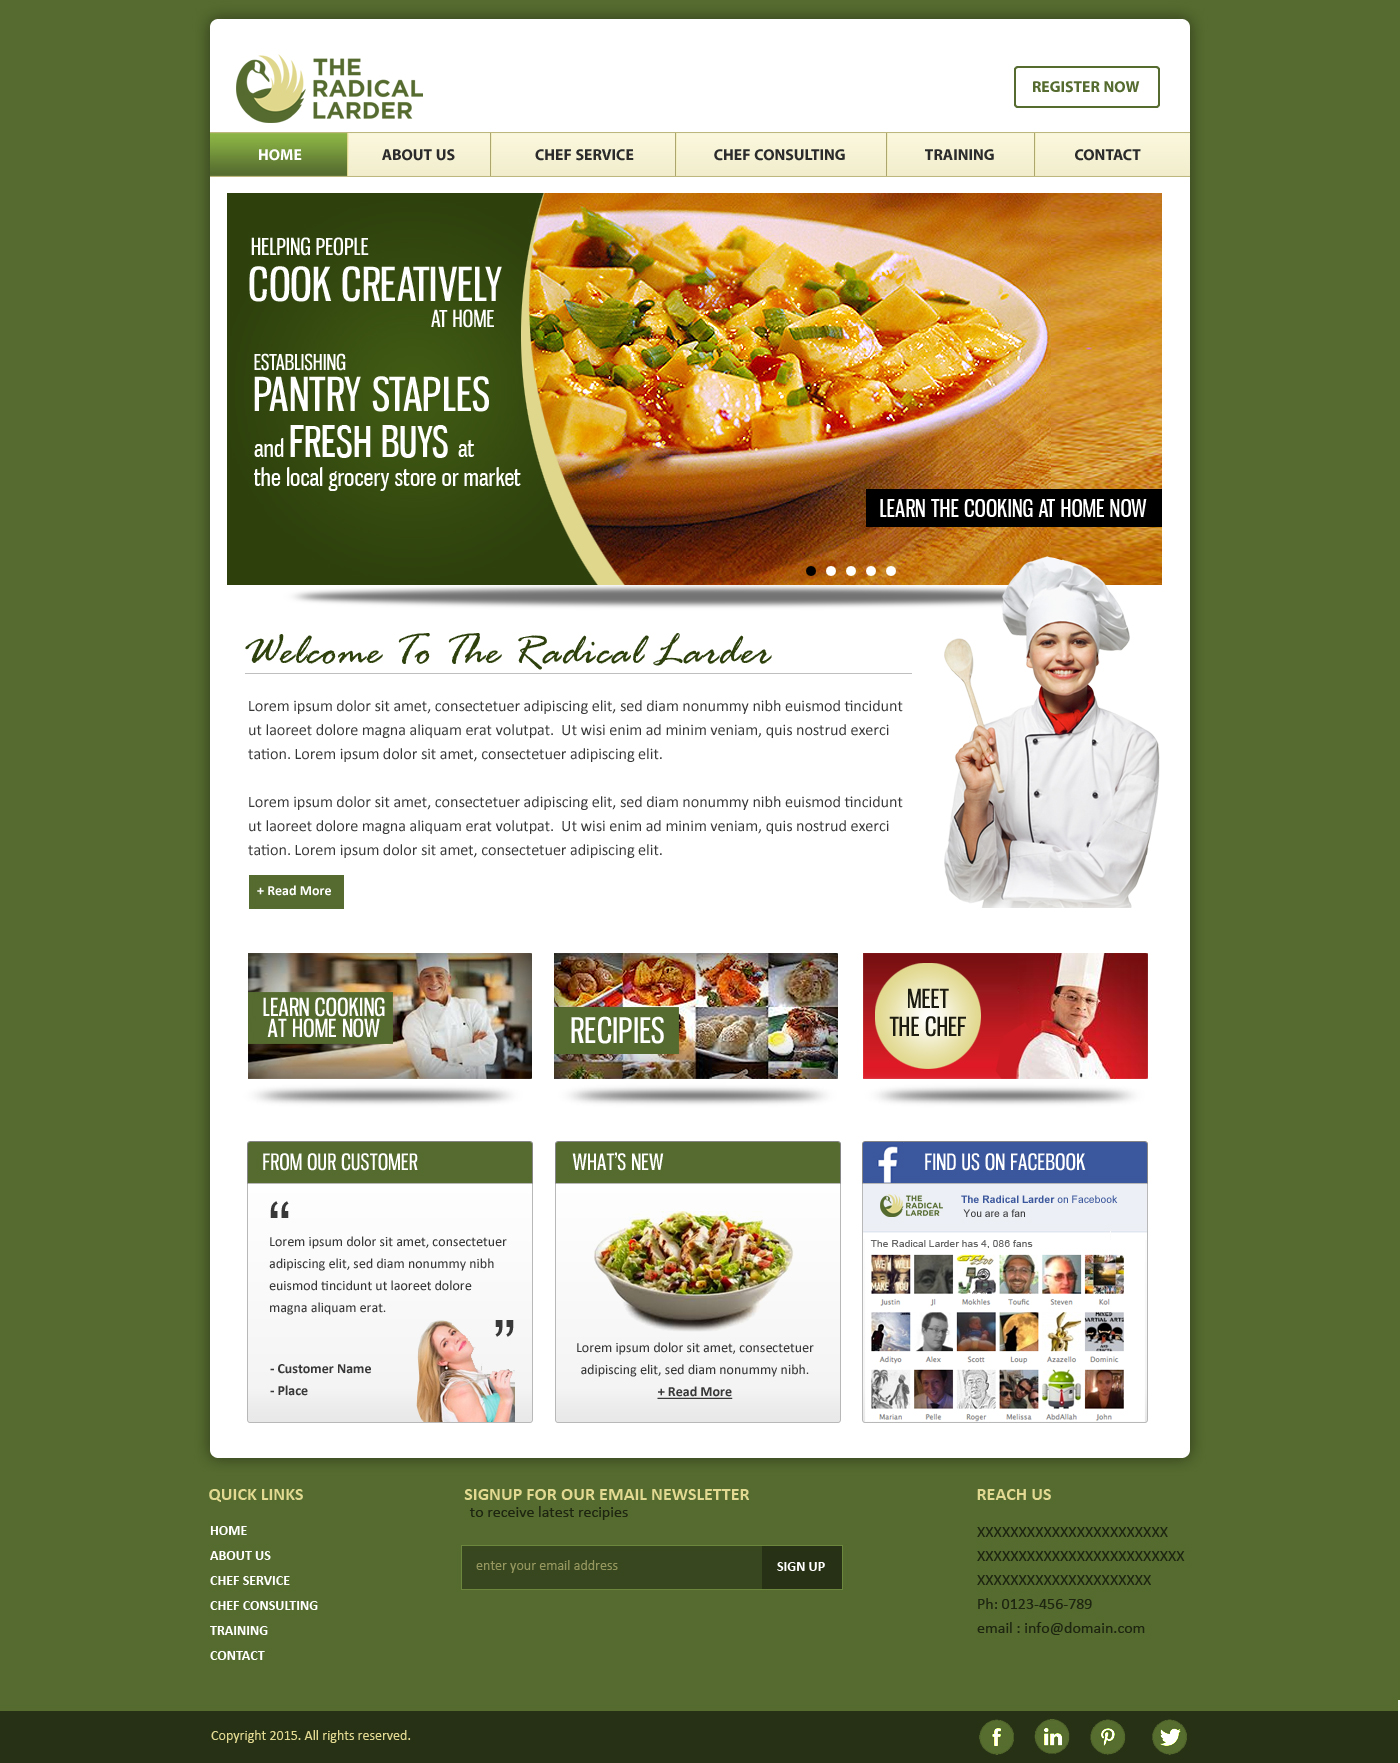 Web Page Design by webexprtz - Entry No. 27 in the Web Page Design Contest The Radical Larder Web Page Design.